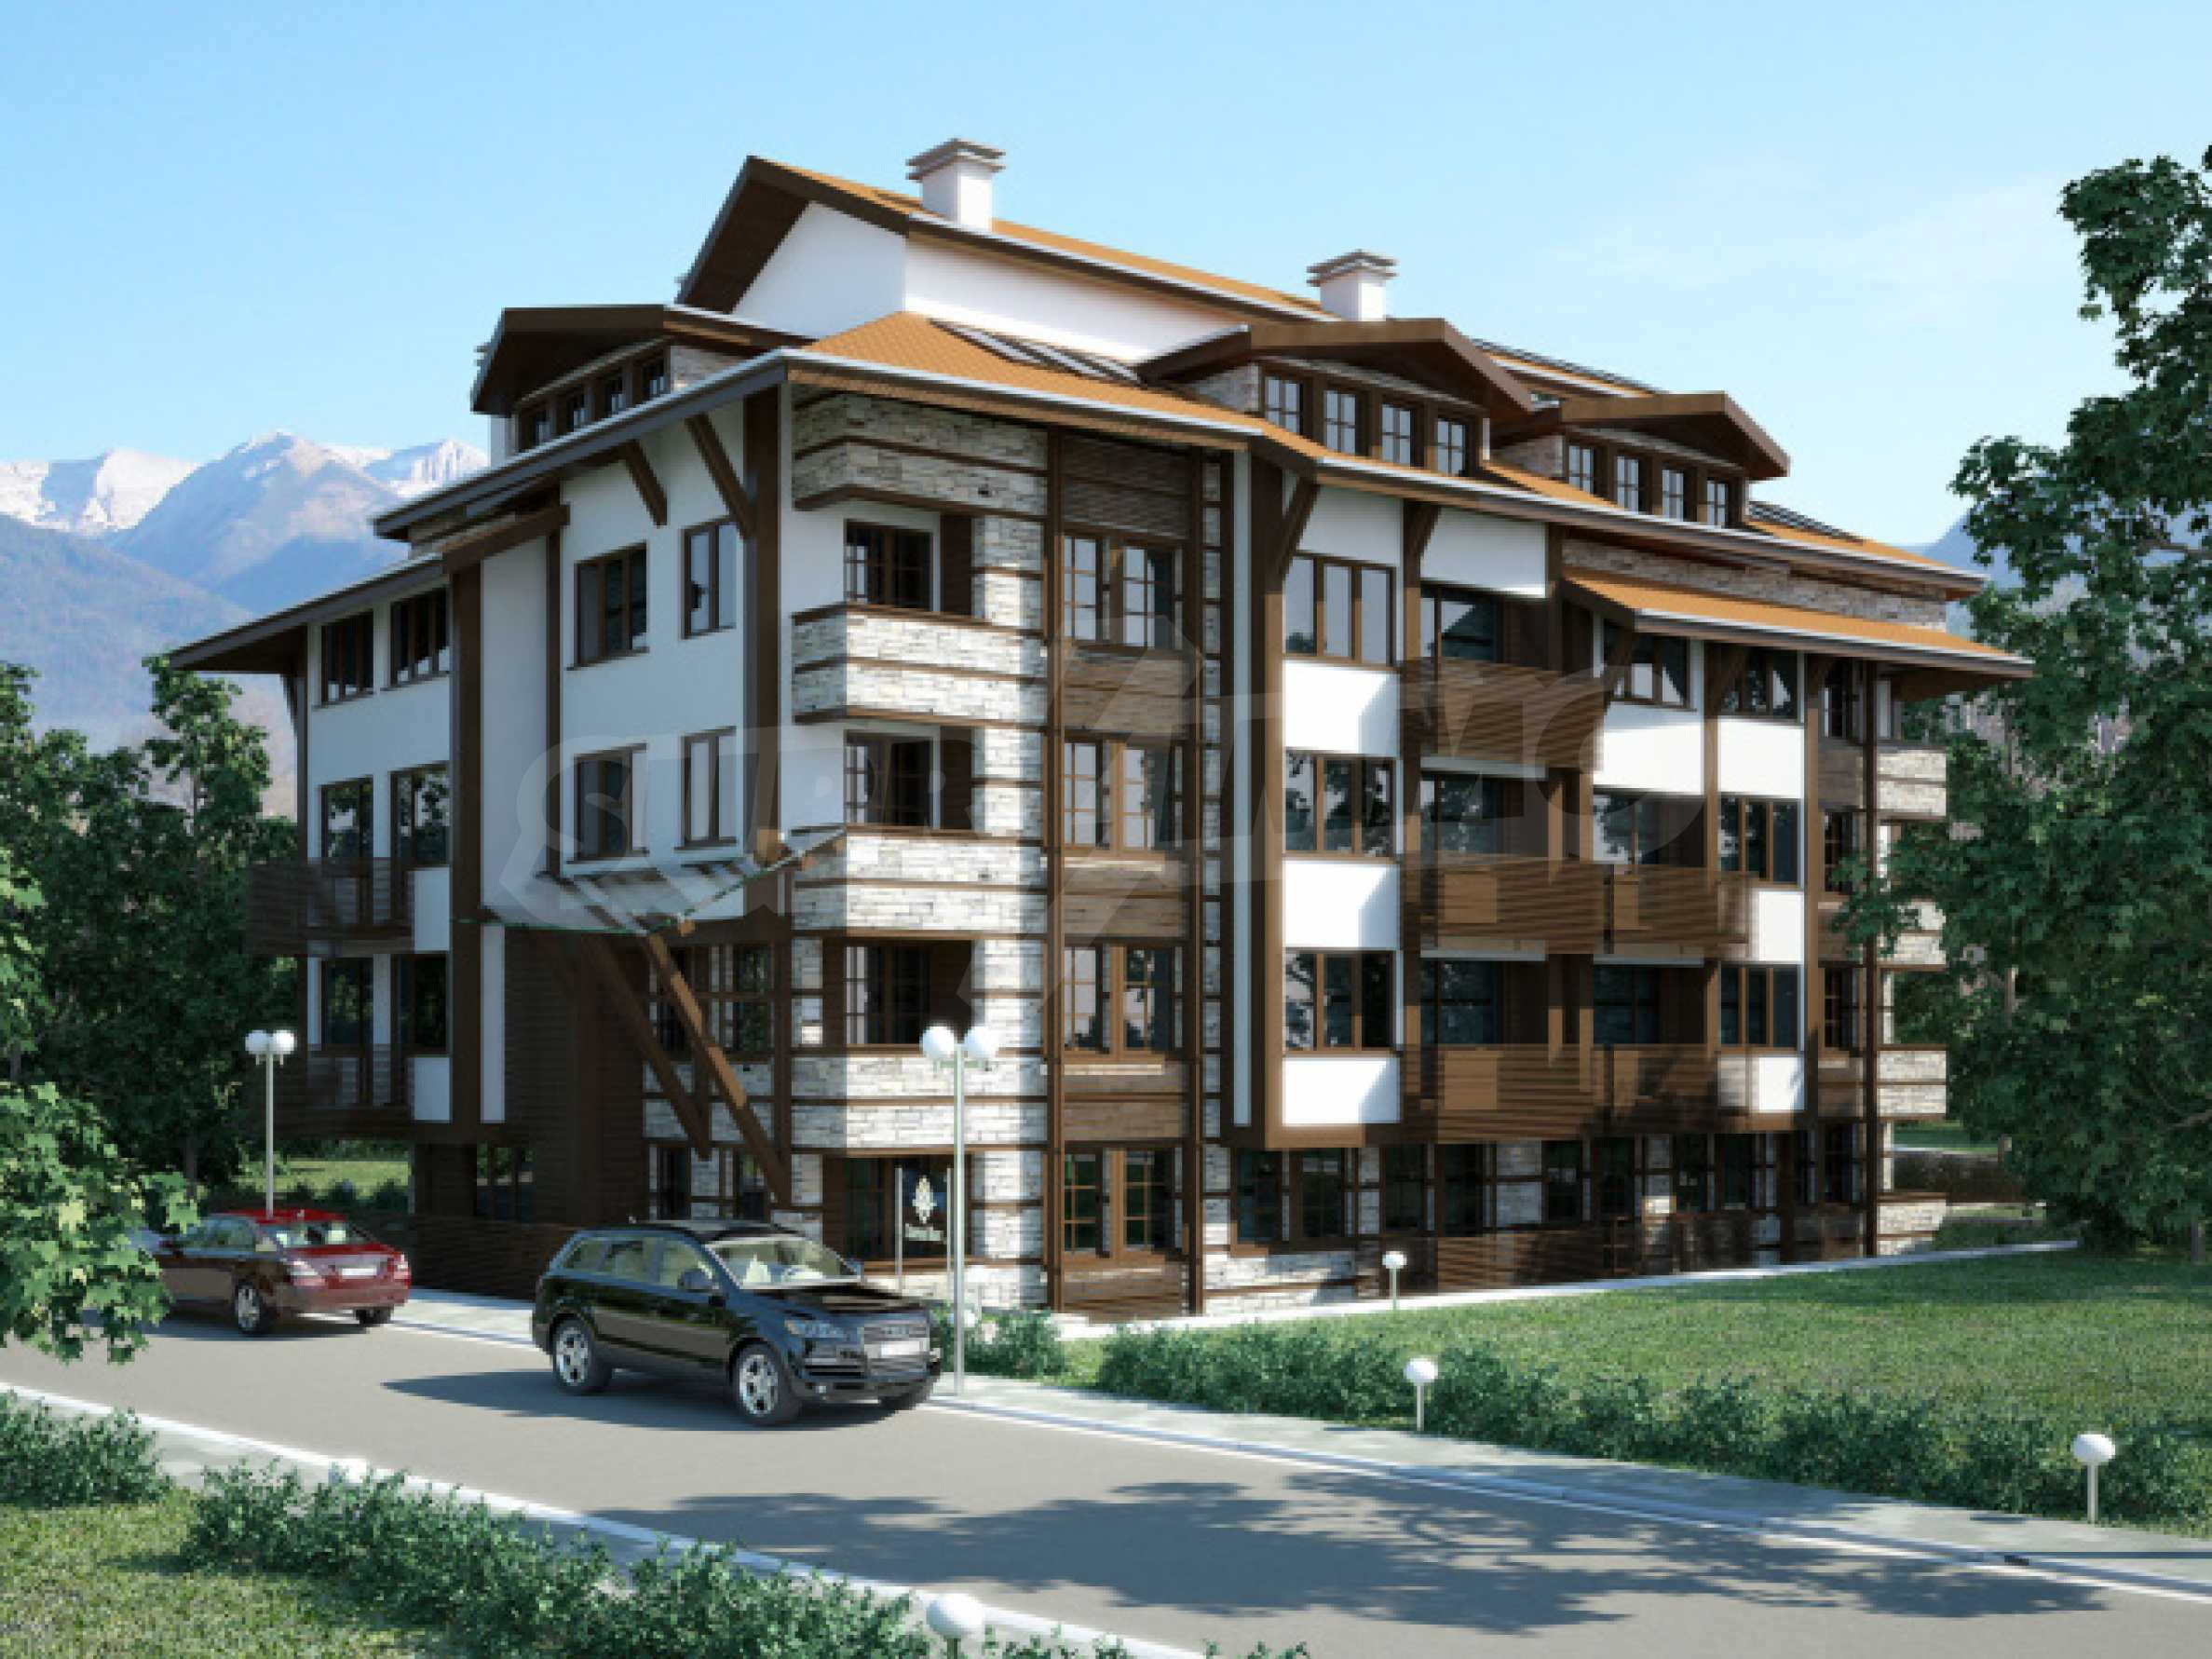 Chateau Blanc: Probably the best investment opportunity in Bansko... 1